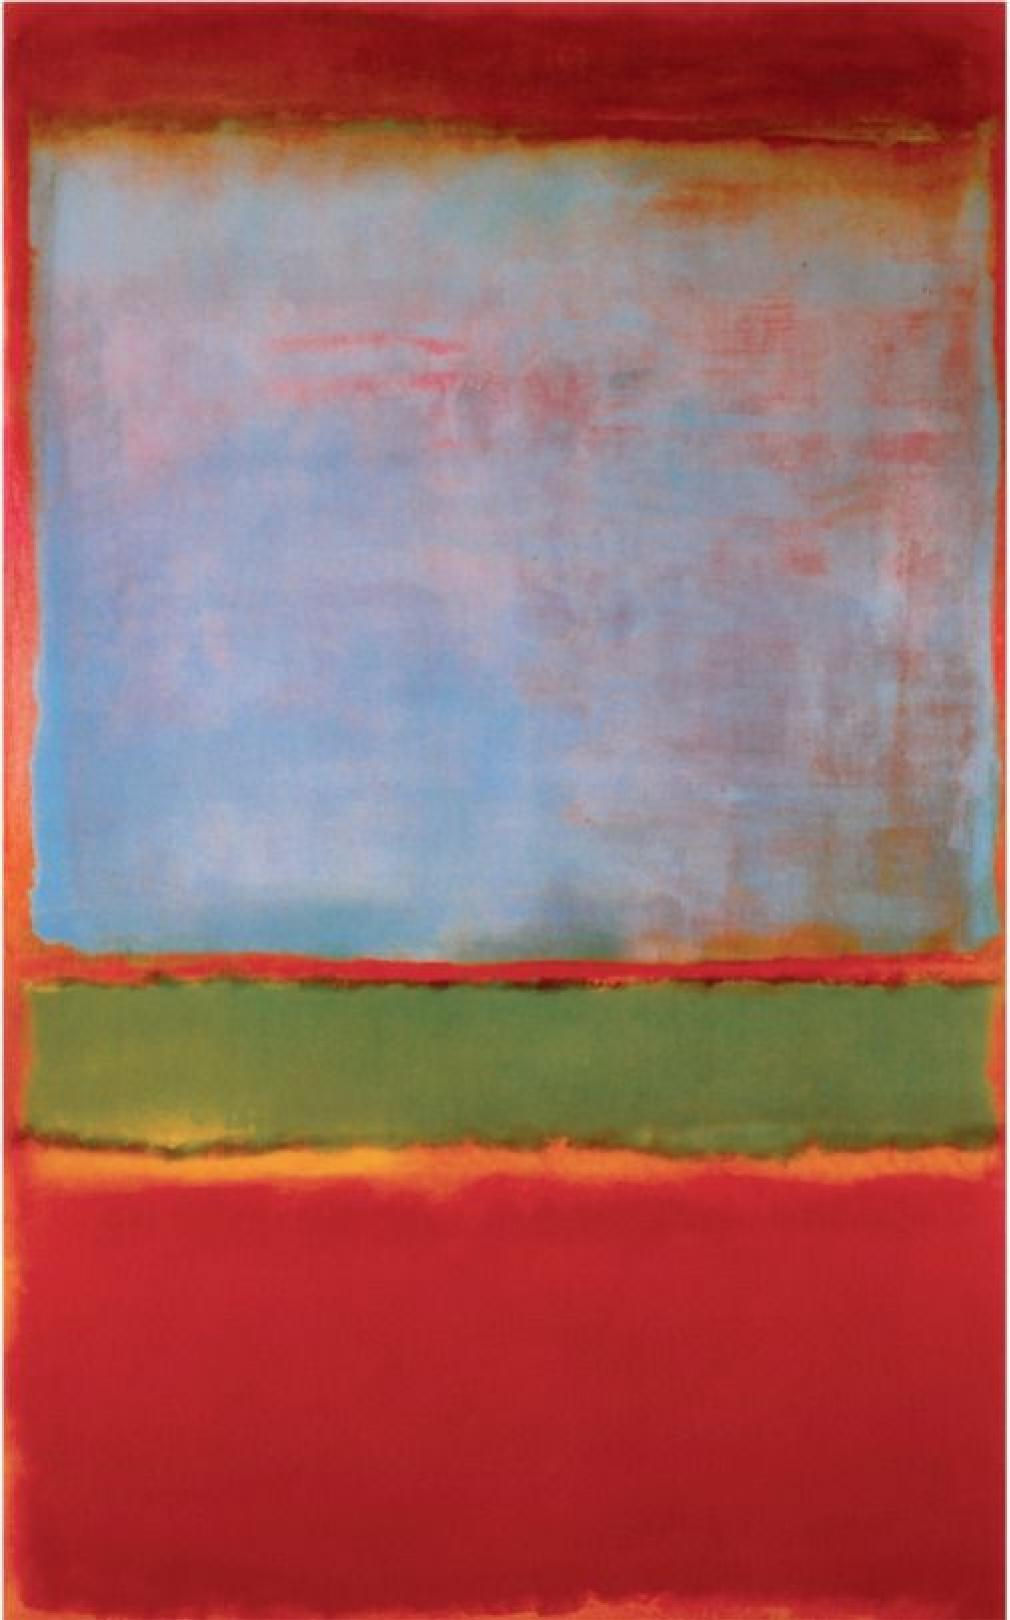 No. 6 (Violet, Green, and Red) – Mark Rothko